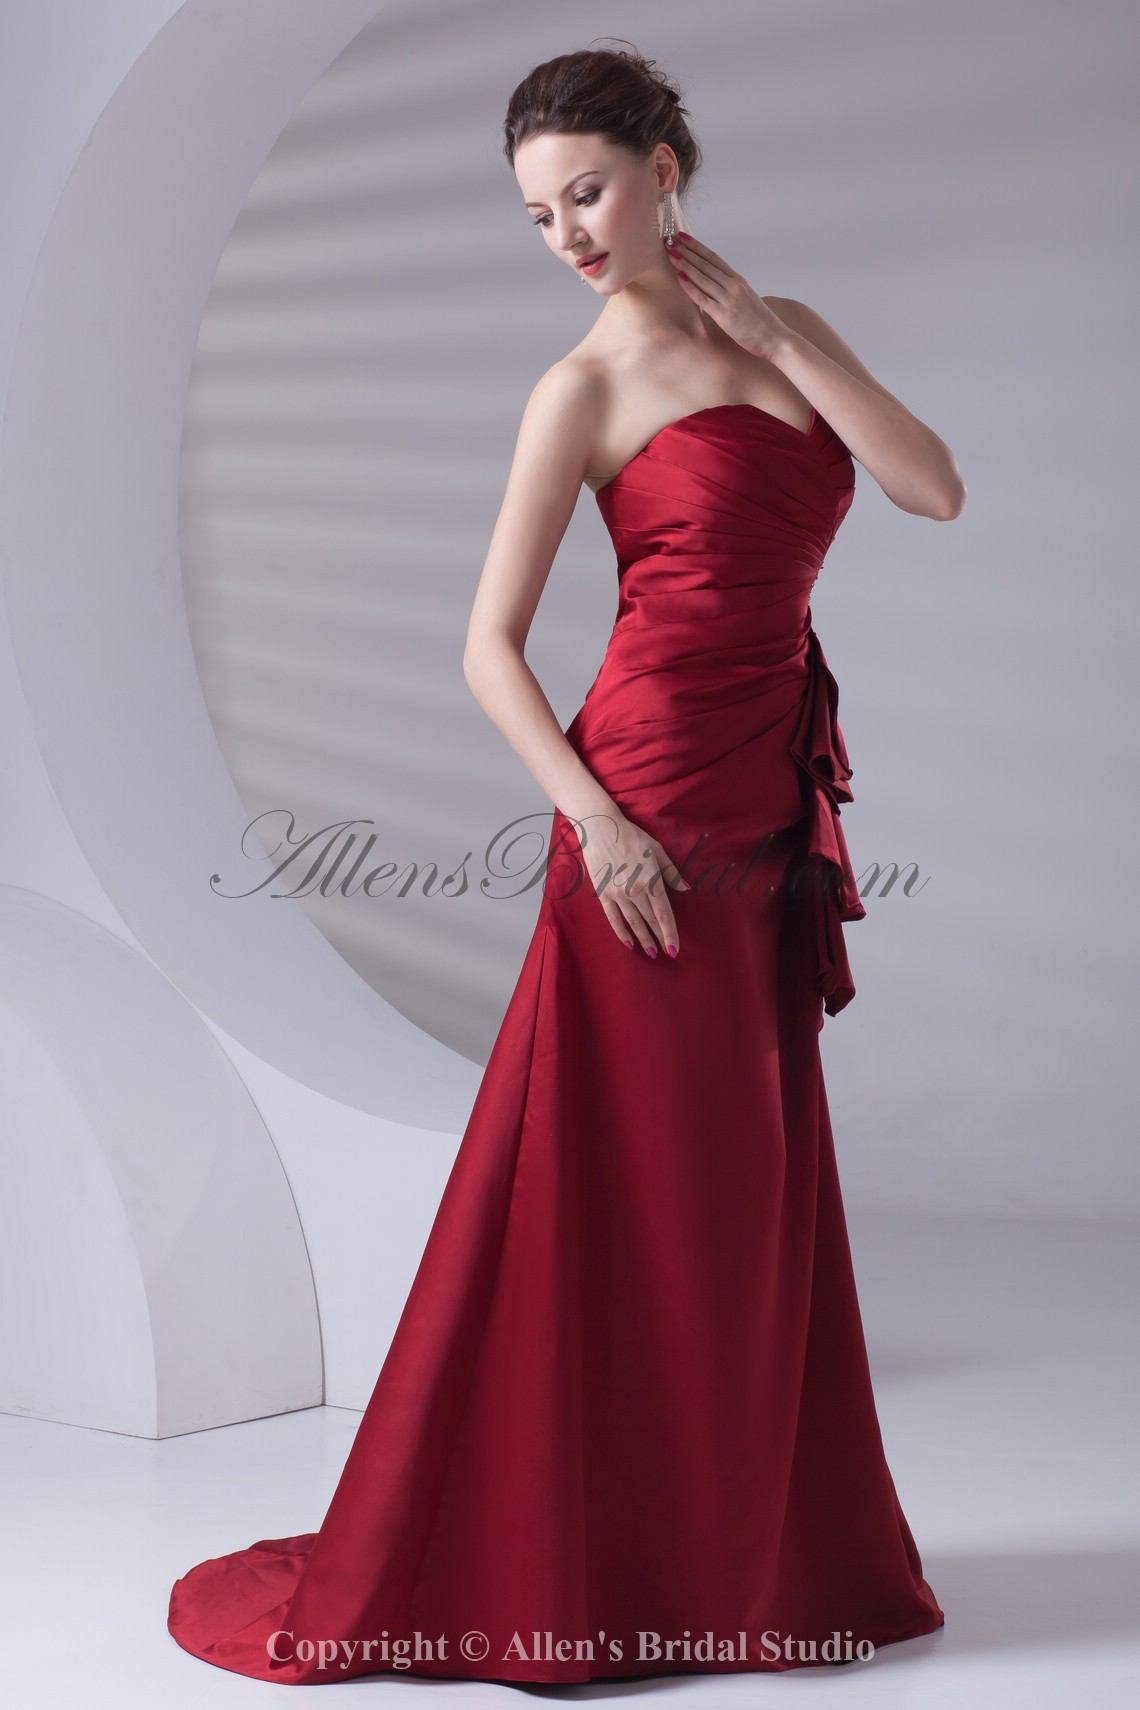 /401-3207/satin-strapless-a-line-floor-length-ruched-prom-dress.jpg